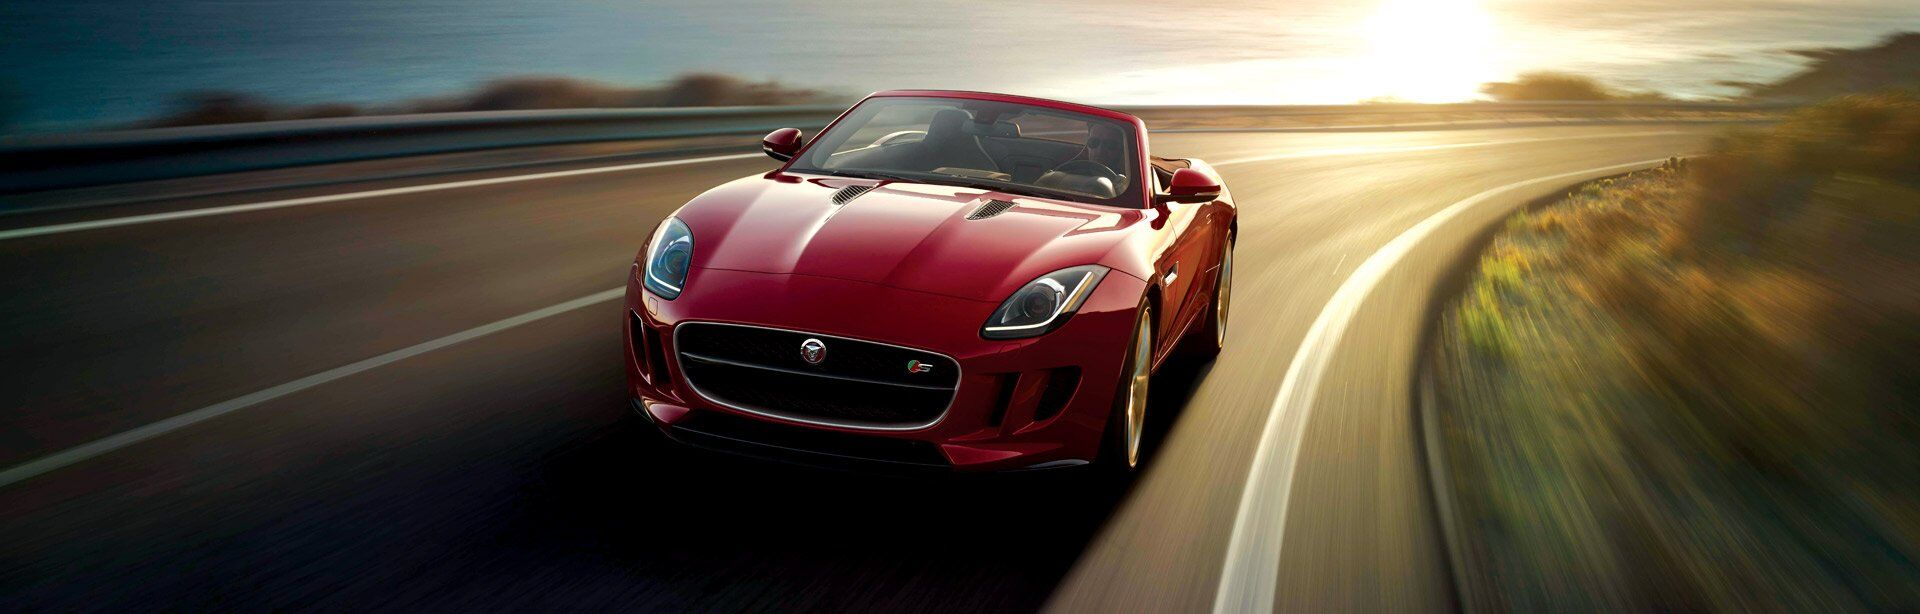 2017 Jaguar F-TYPE Convertible Auto S British Design E